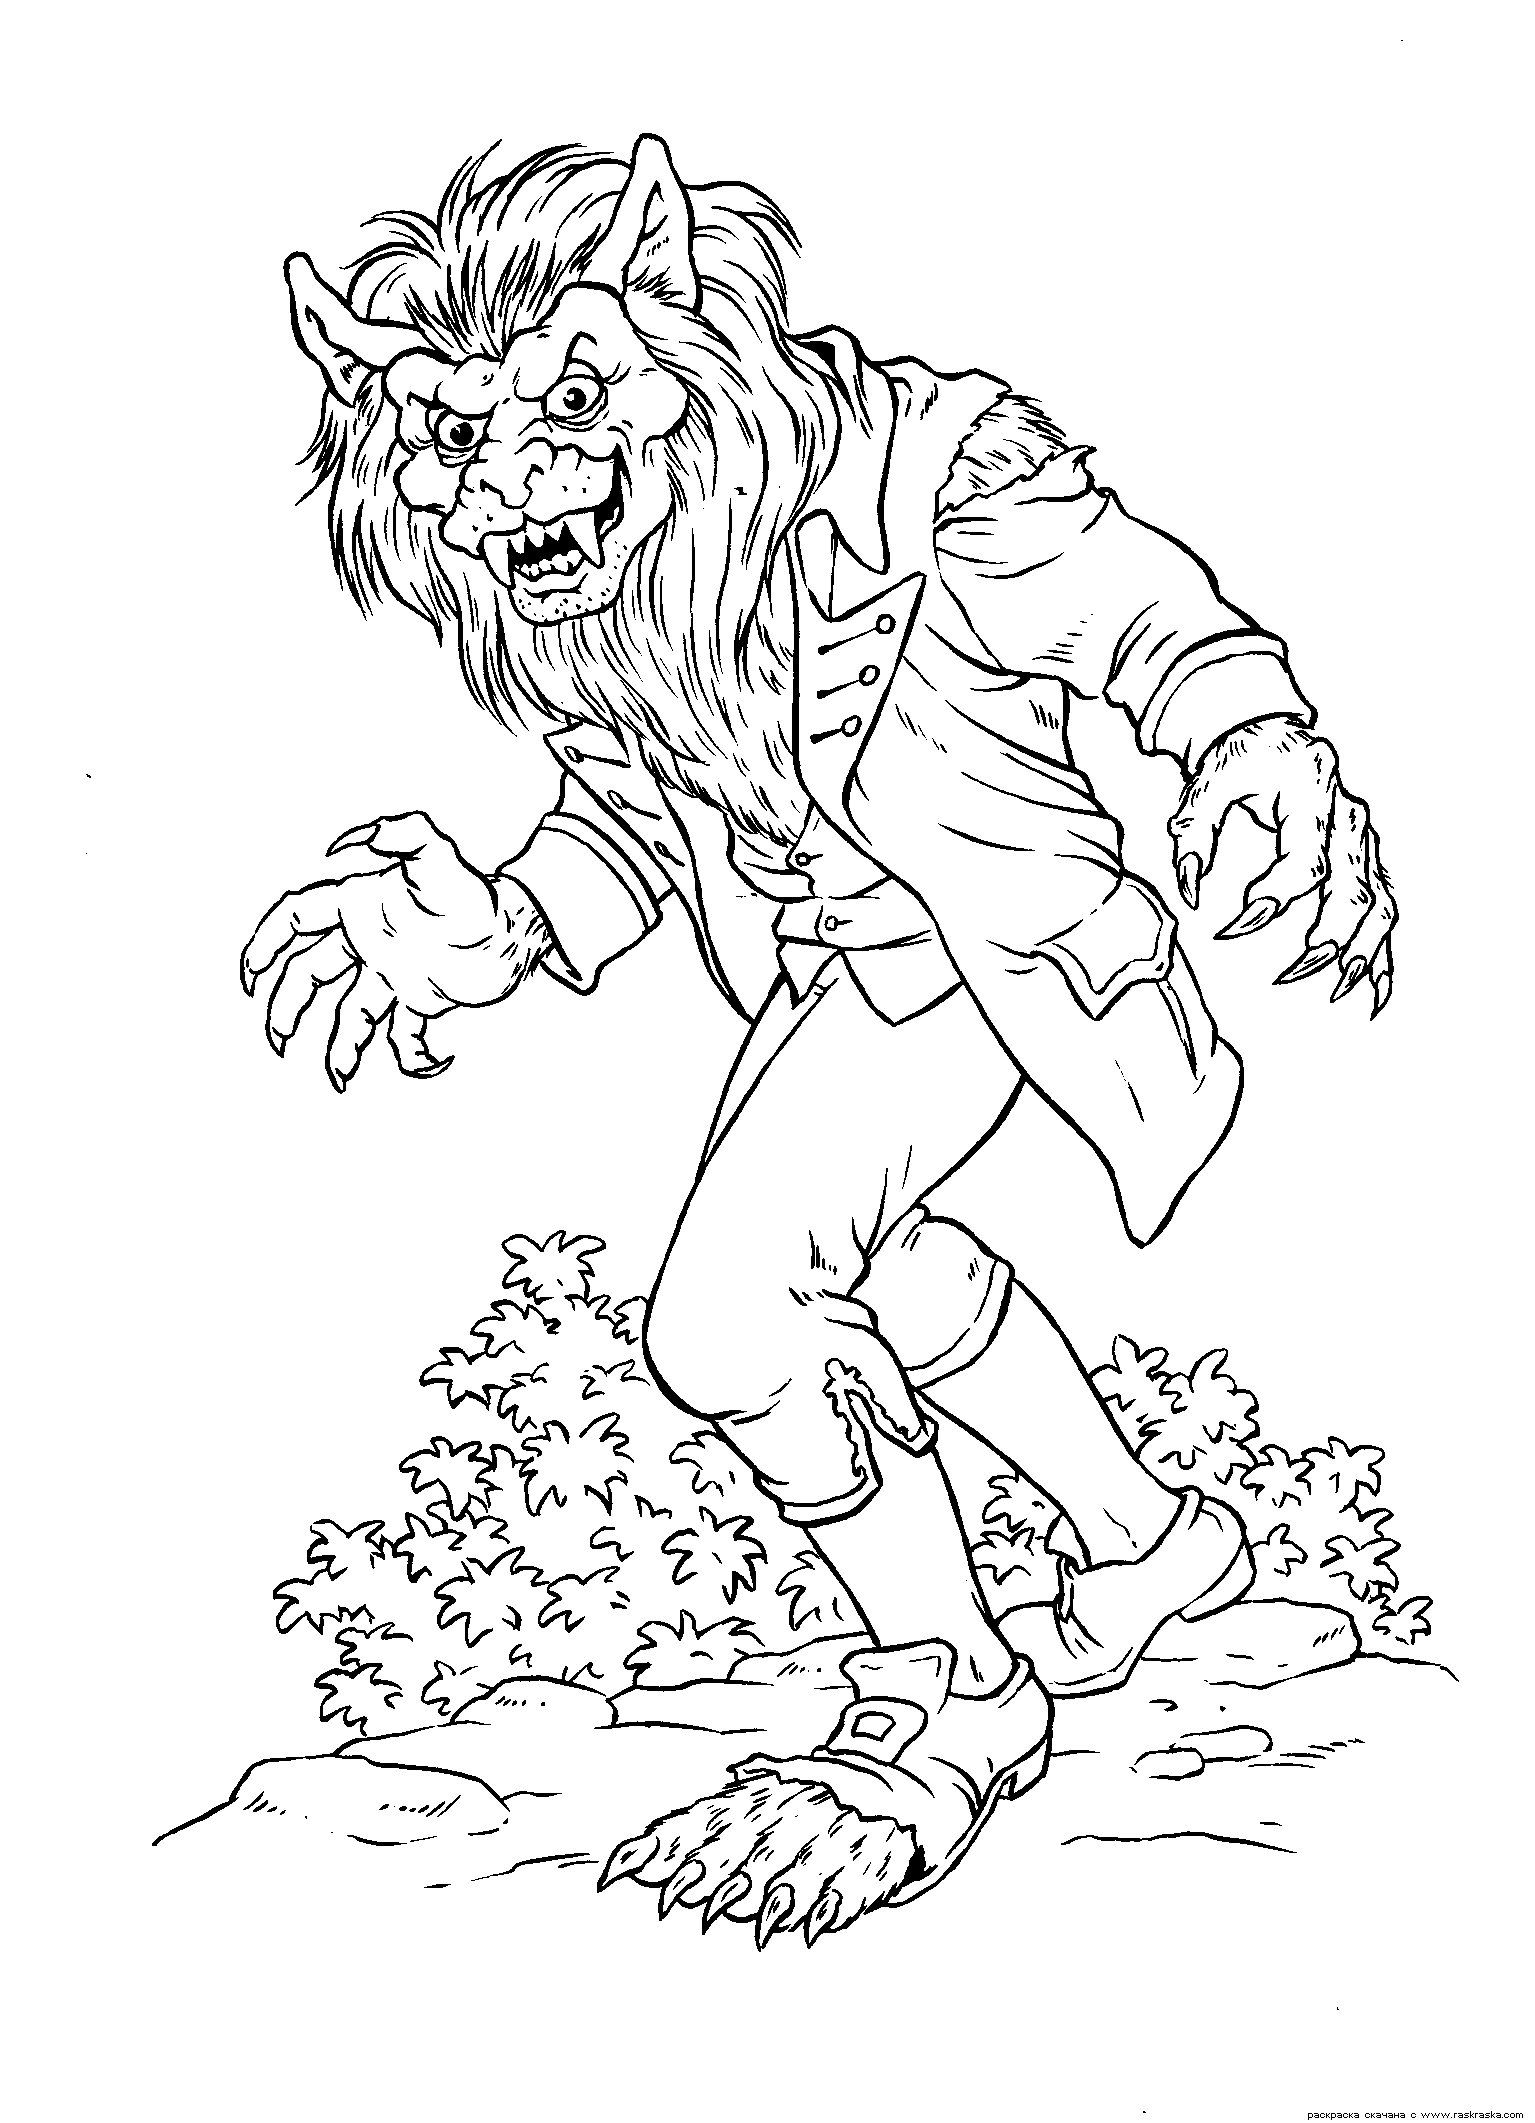 werewolf coloring pages google search - Halloween Werewolf Coloring Pages